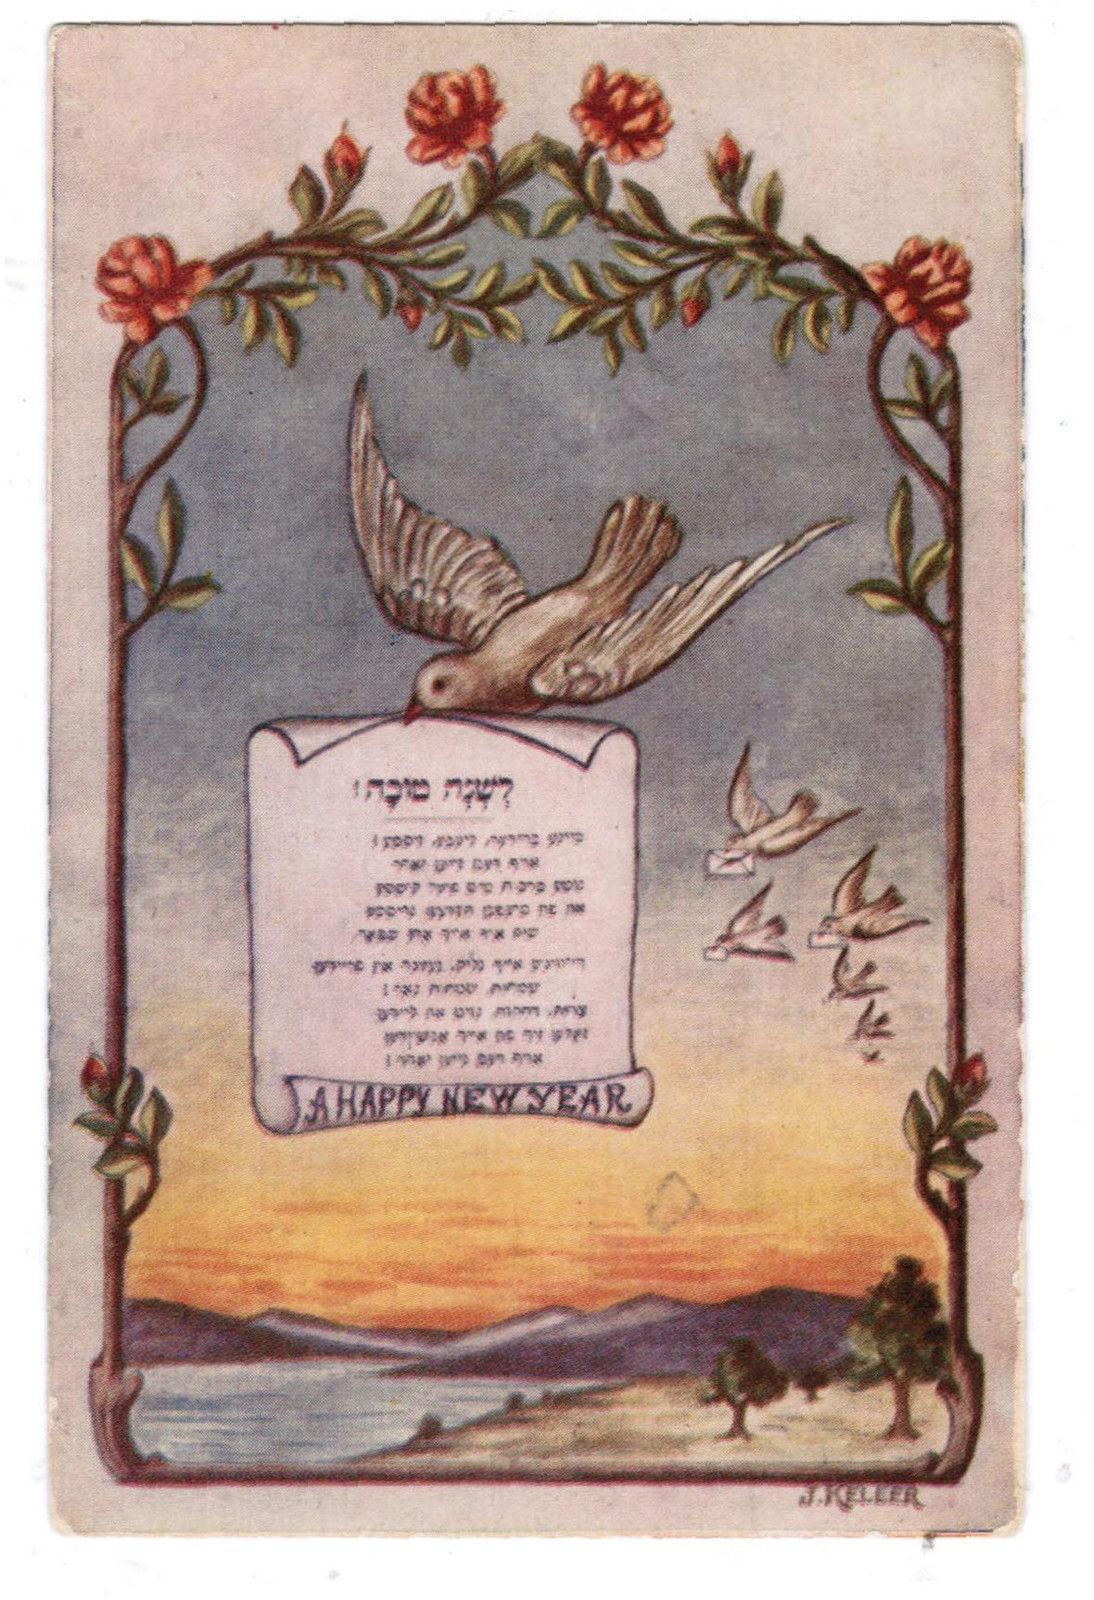 Shana Tova Jewish New Year Cards And Other Jewish Holiday